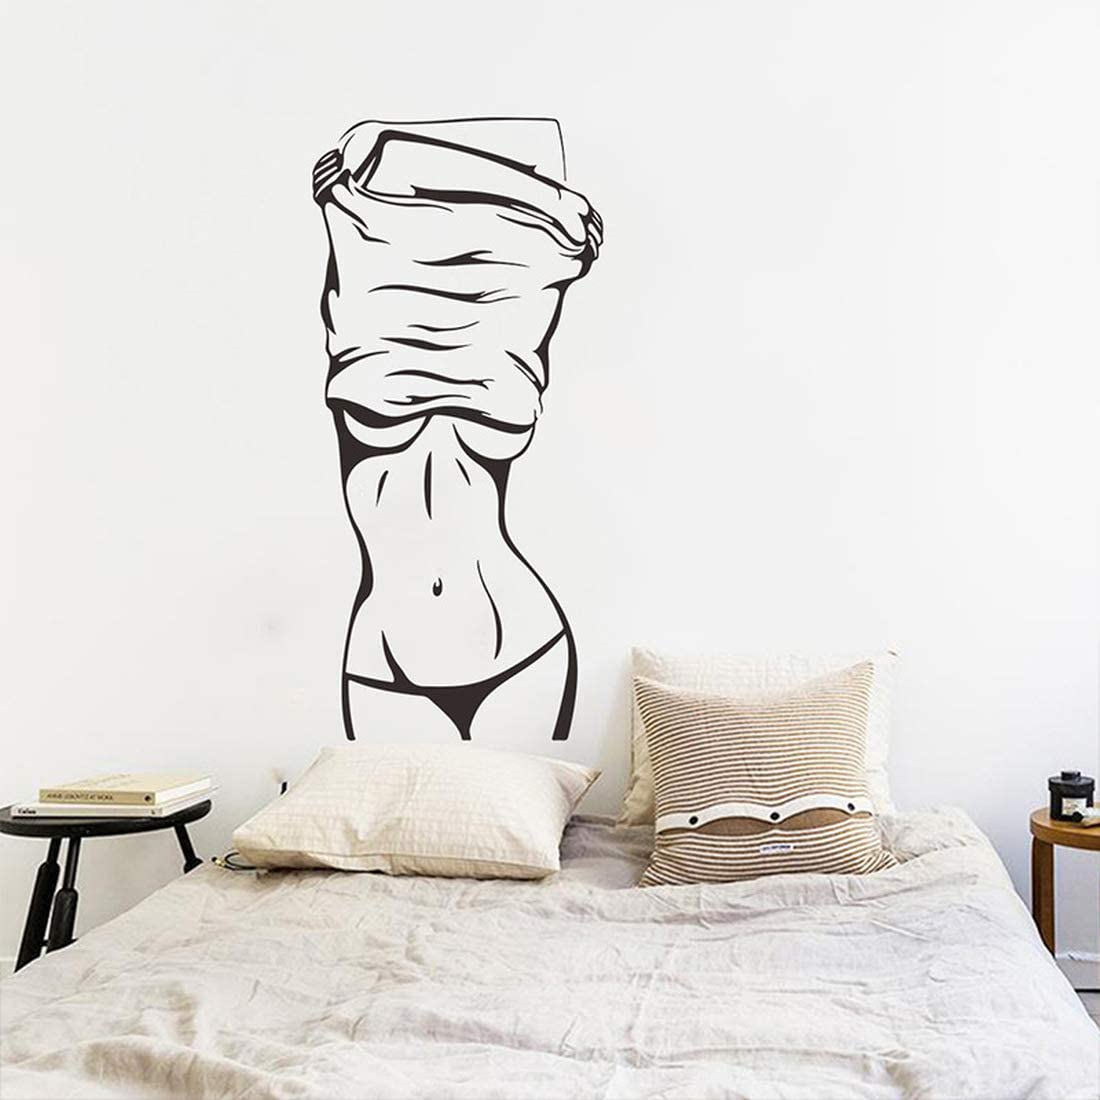 Wall Stickers Decor-Great for Room,Livingroom,Walls,Kitchen,Bedroom and More, Wall Stickers Decals (Undressing Beauty)